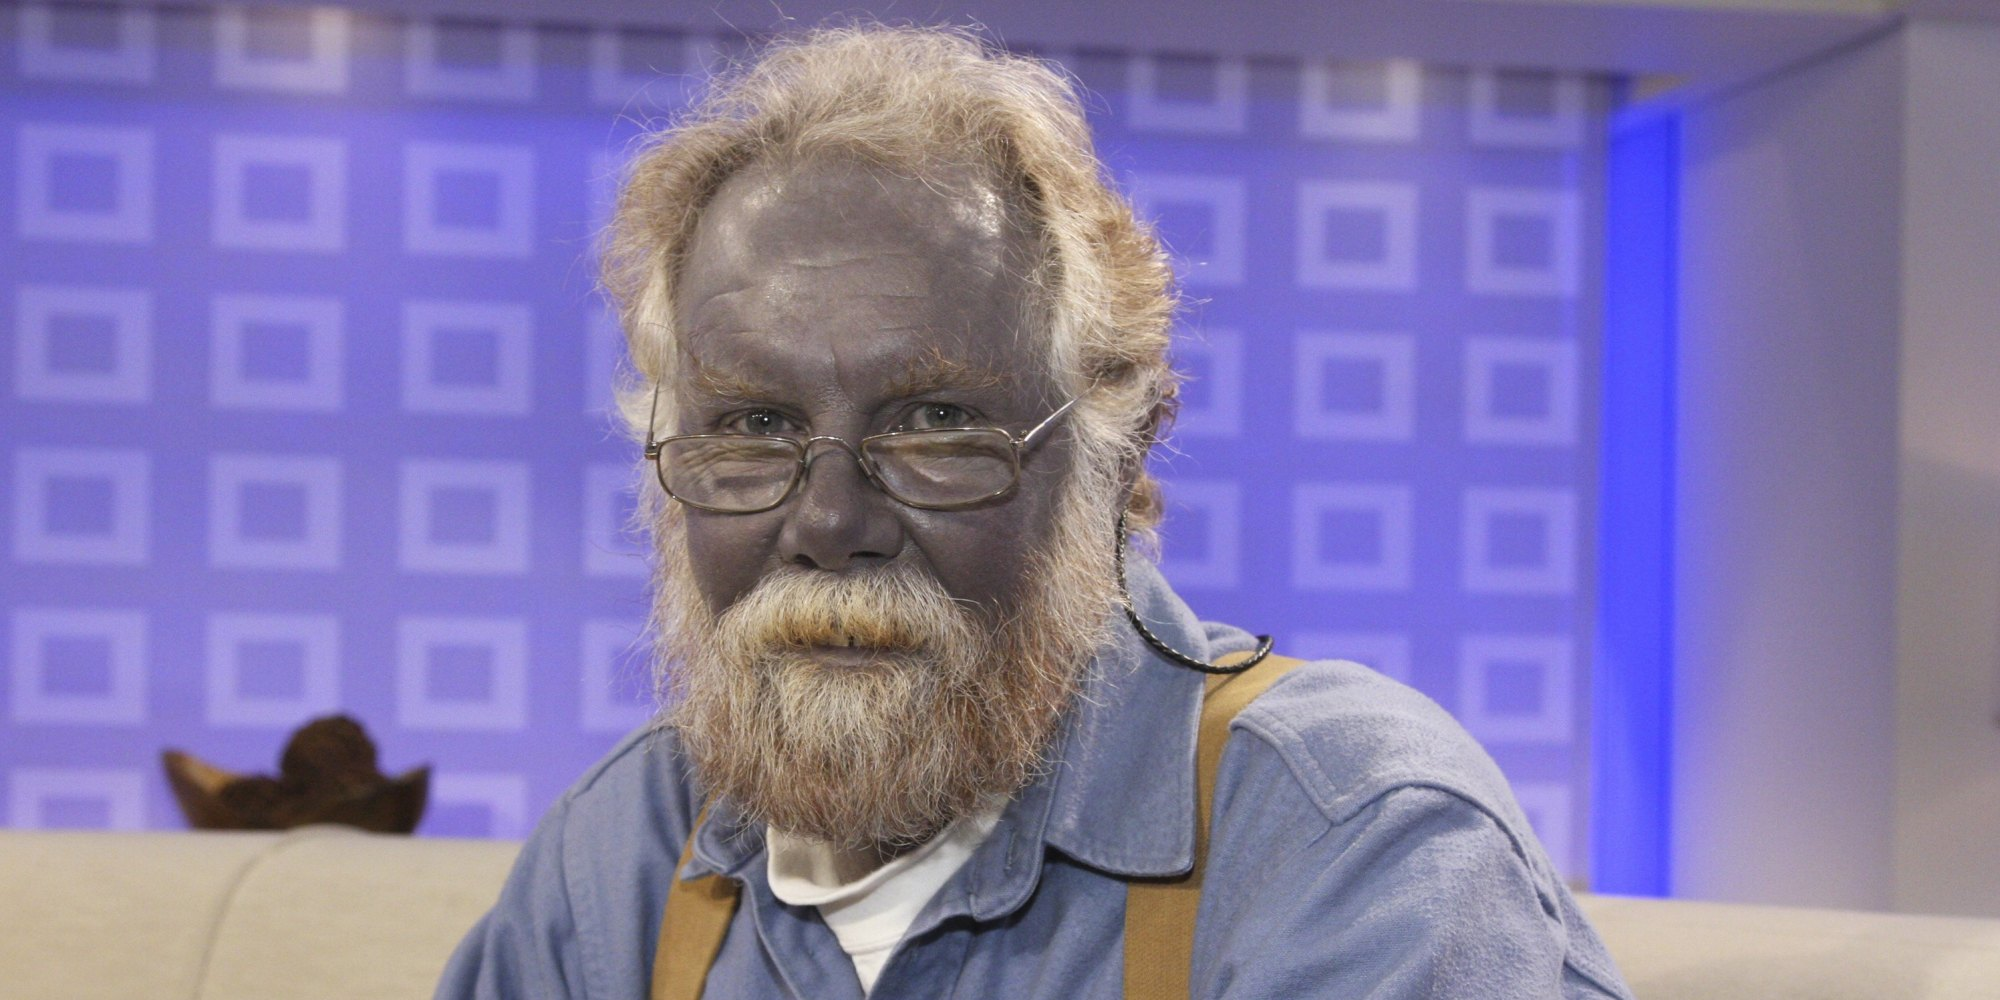 Drinking Too Much Colloidal Silver